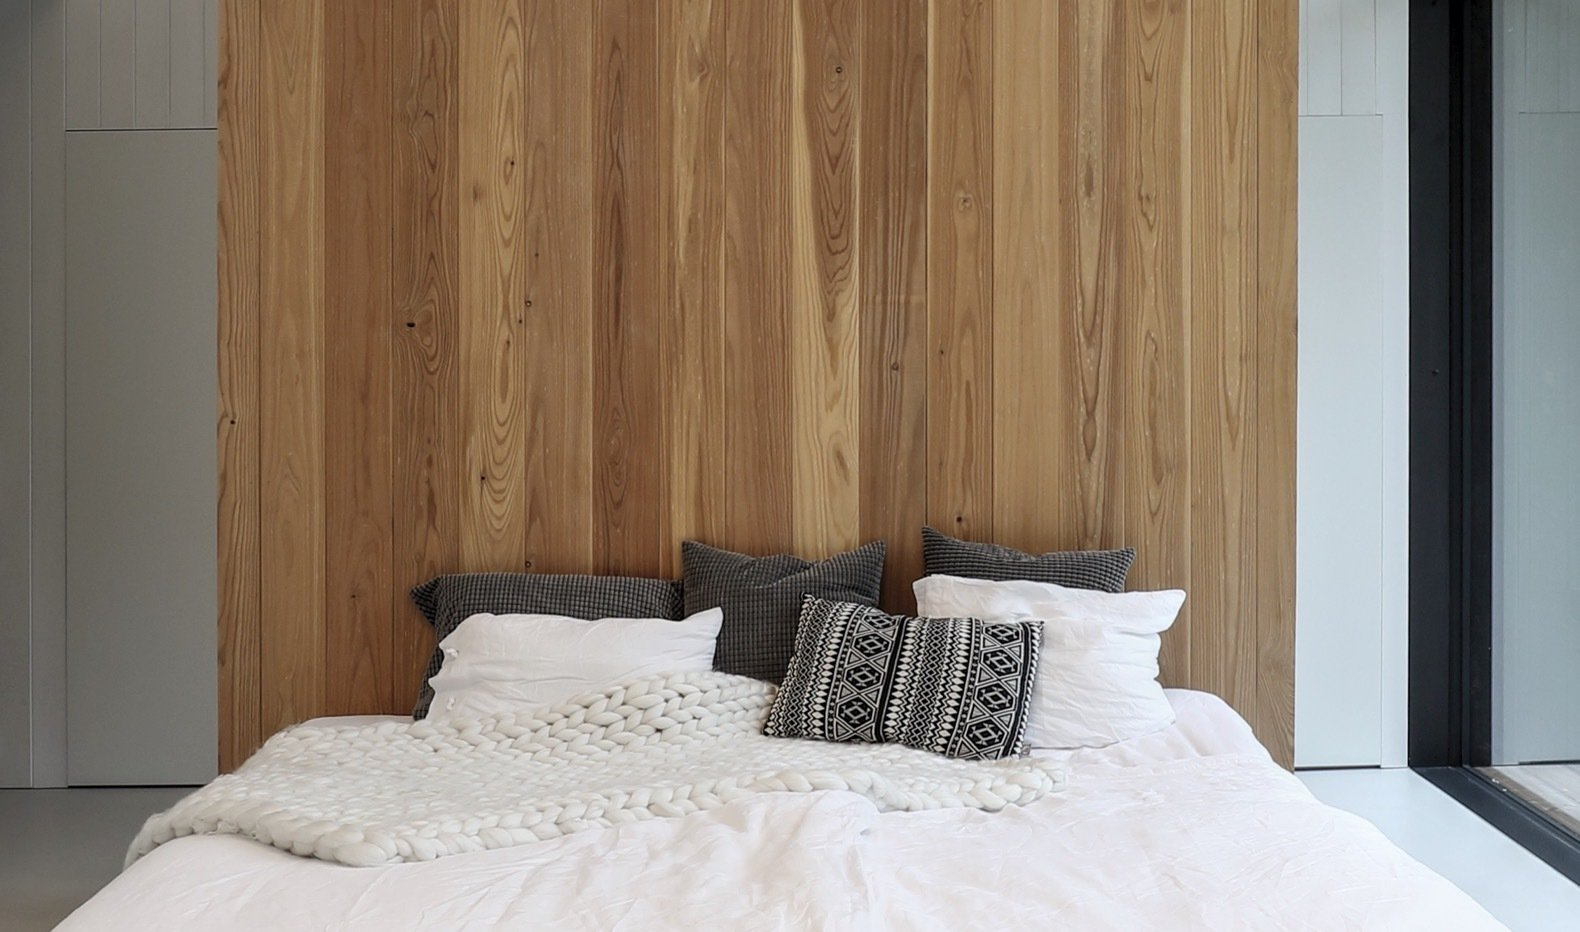 Bedroom and Bed A timber wall imbues warmth into the minimalist bedroom.   Photo 11 of 15 in This Minimalist Bungalow Will Change Color Over Time